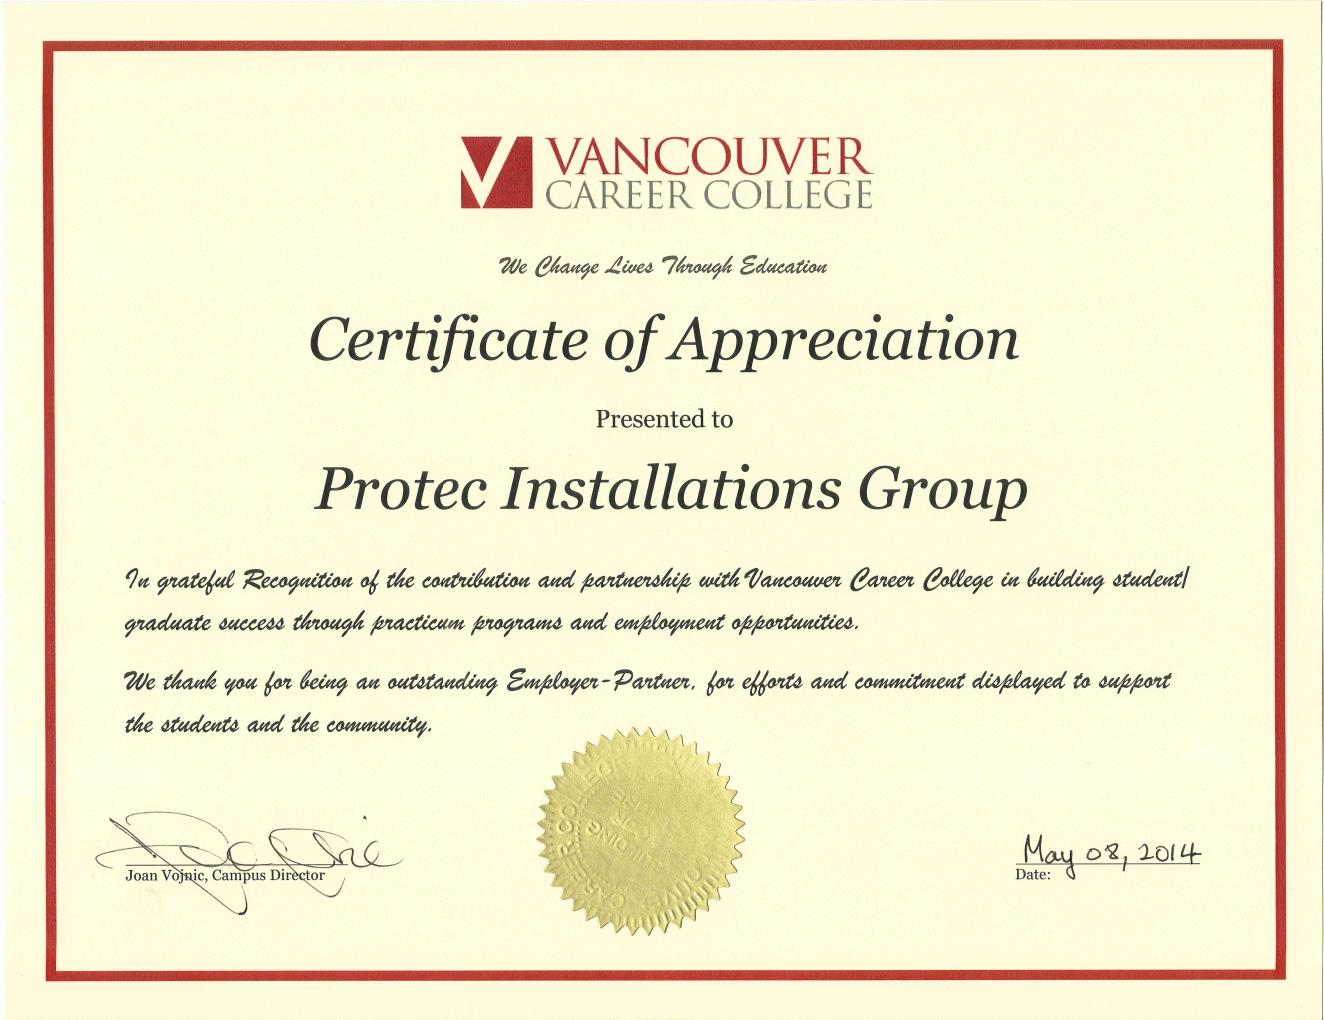 Protec was recently awarded this certificate for the work provided to VCC Practicum students. Many of them are hired as Apprentices!